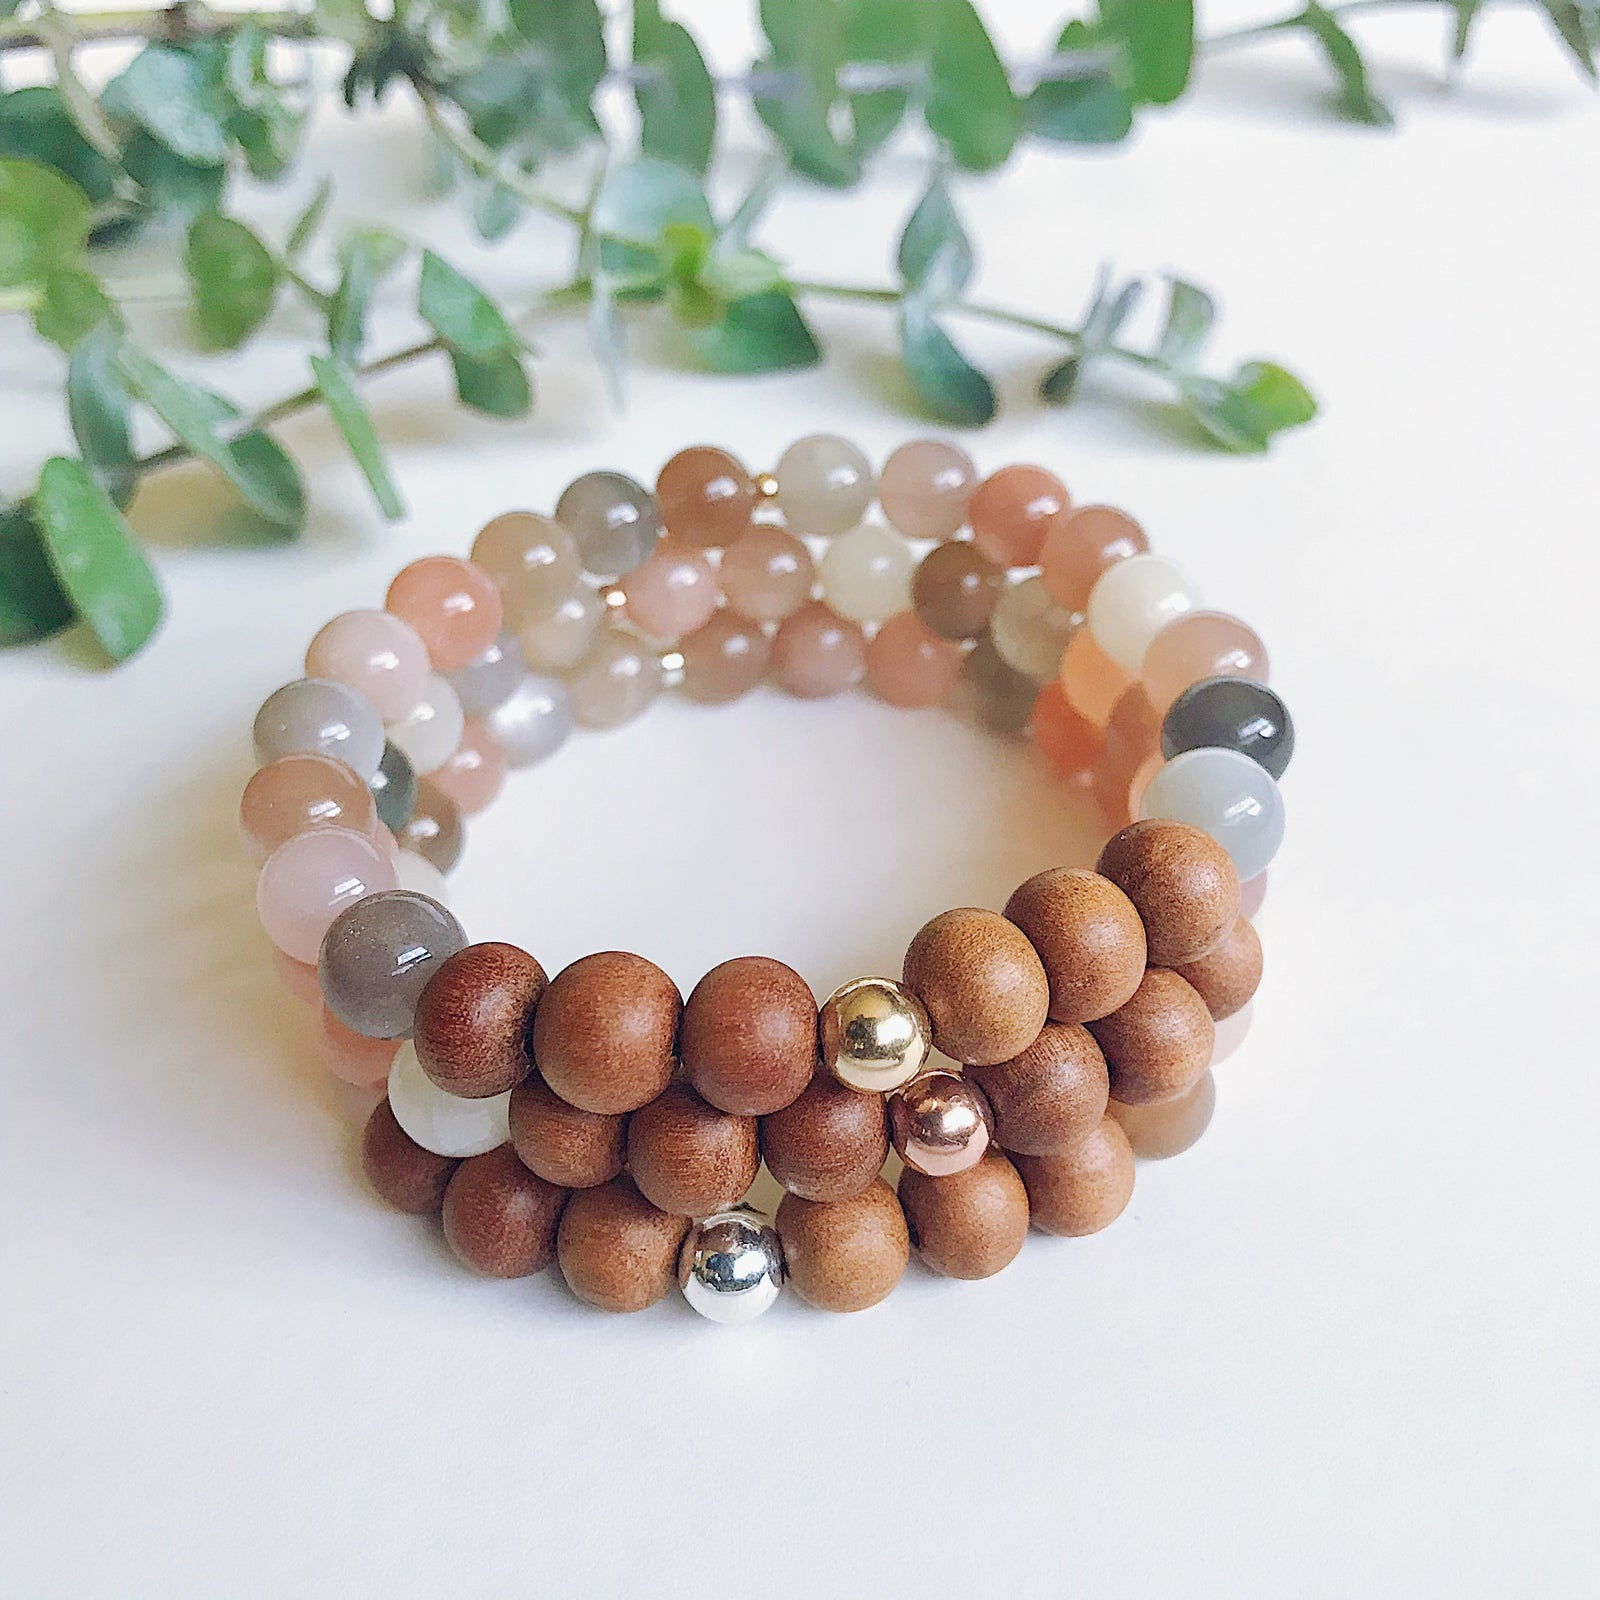 Mixed Moonstone + Sandalwood Bracelet